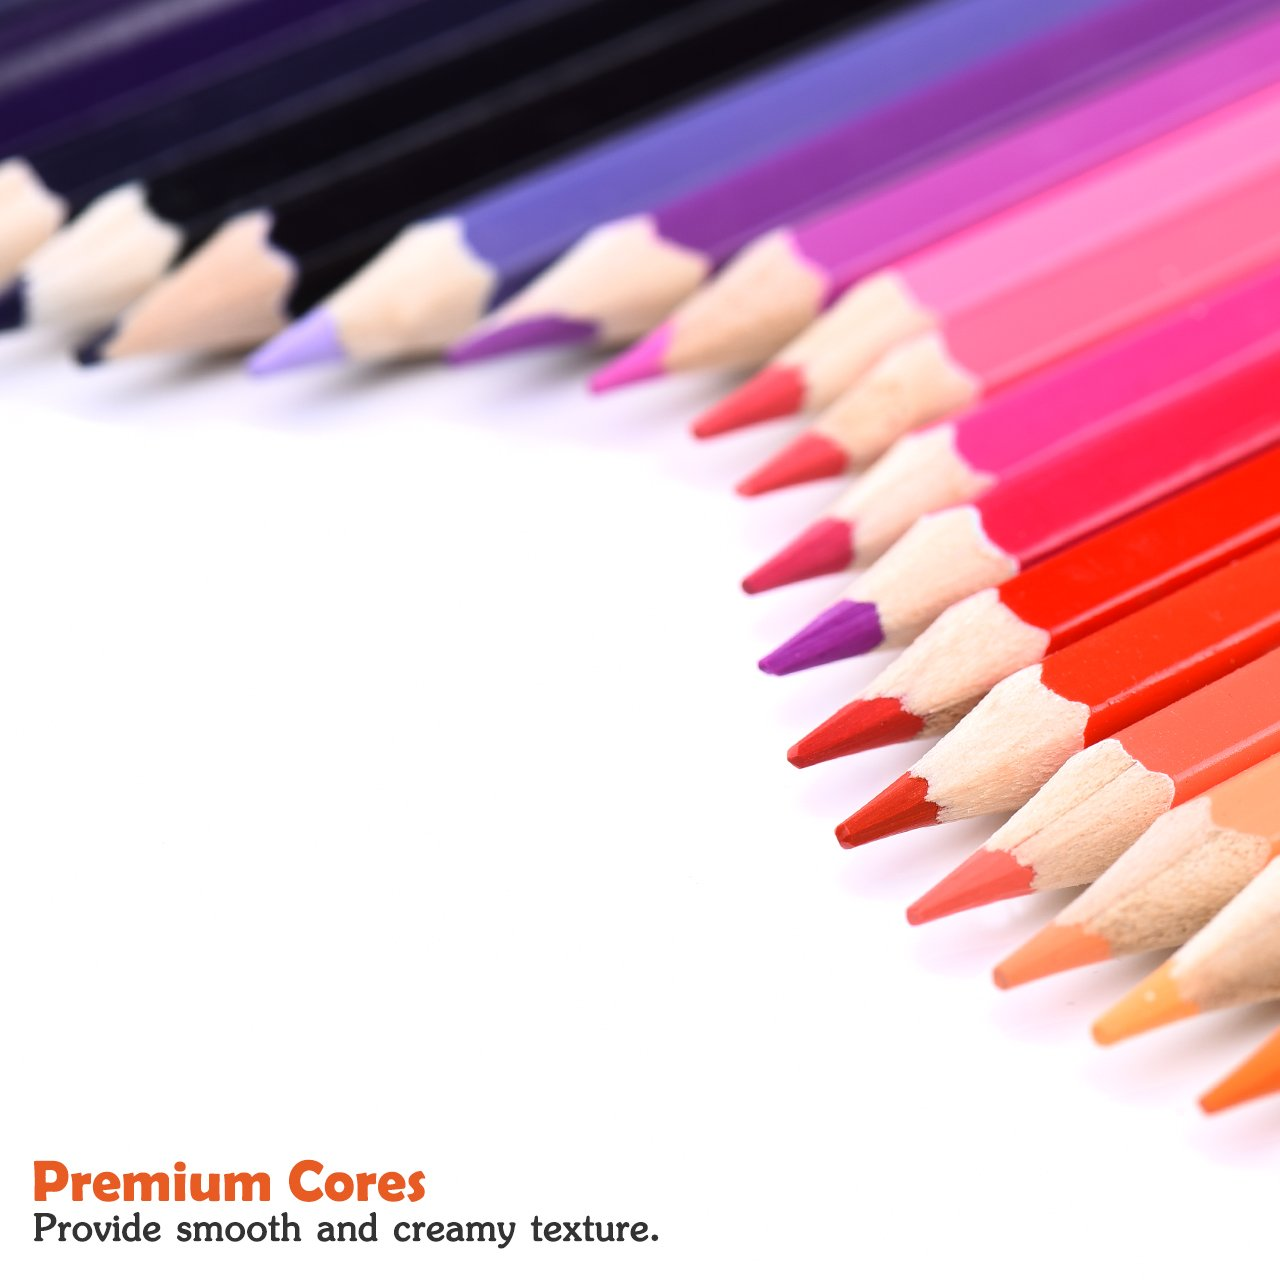 Colored Pencils, Atmoko Color Pencils Set with 72 Colored Pensils, Easy to Sharpen, [Hard to Break], Colored Pensils Bulk for Kids and Adults, Assorted Colors by ATMOKO (Image #4)